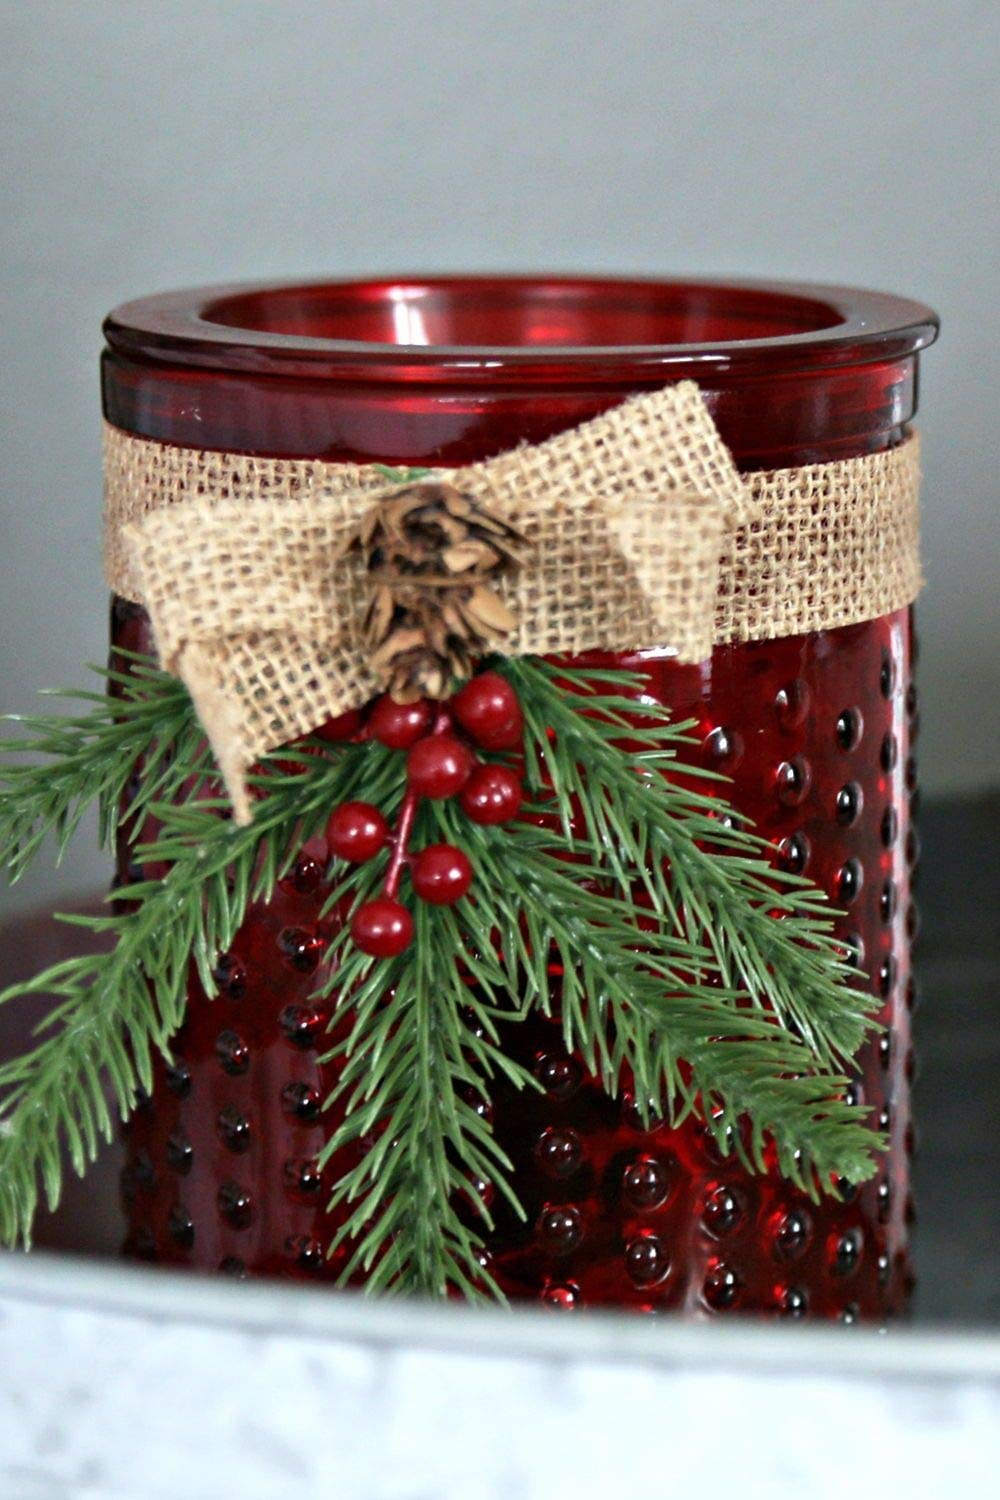 Electric 2-in-1 Candle Warmer Wax Melter - 2 Piece Ceramic Burner Melts Scented Candles Oil Fragrances Tart Cubes - Odor Eliminating Plug in Flameless Air Freshener - Holiday Christmas Decor